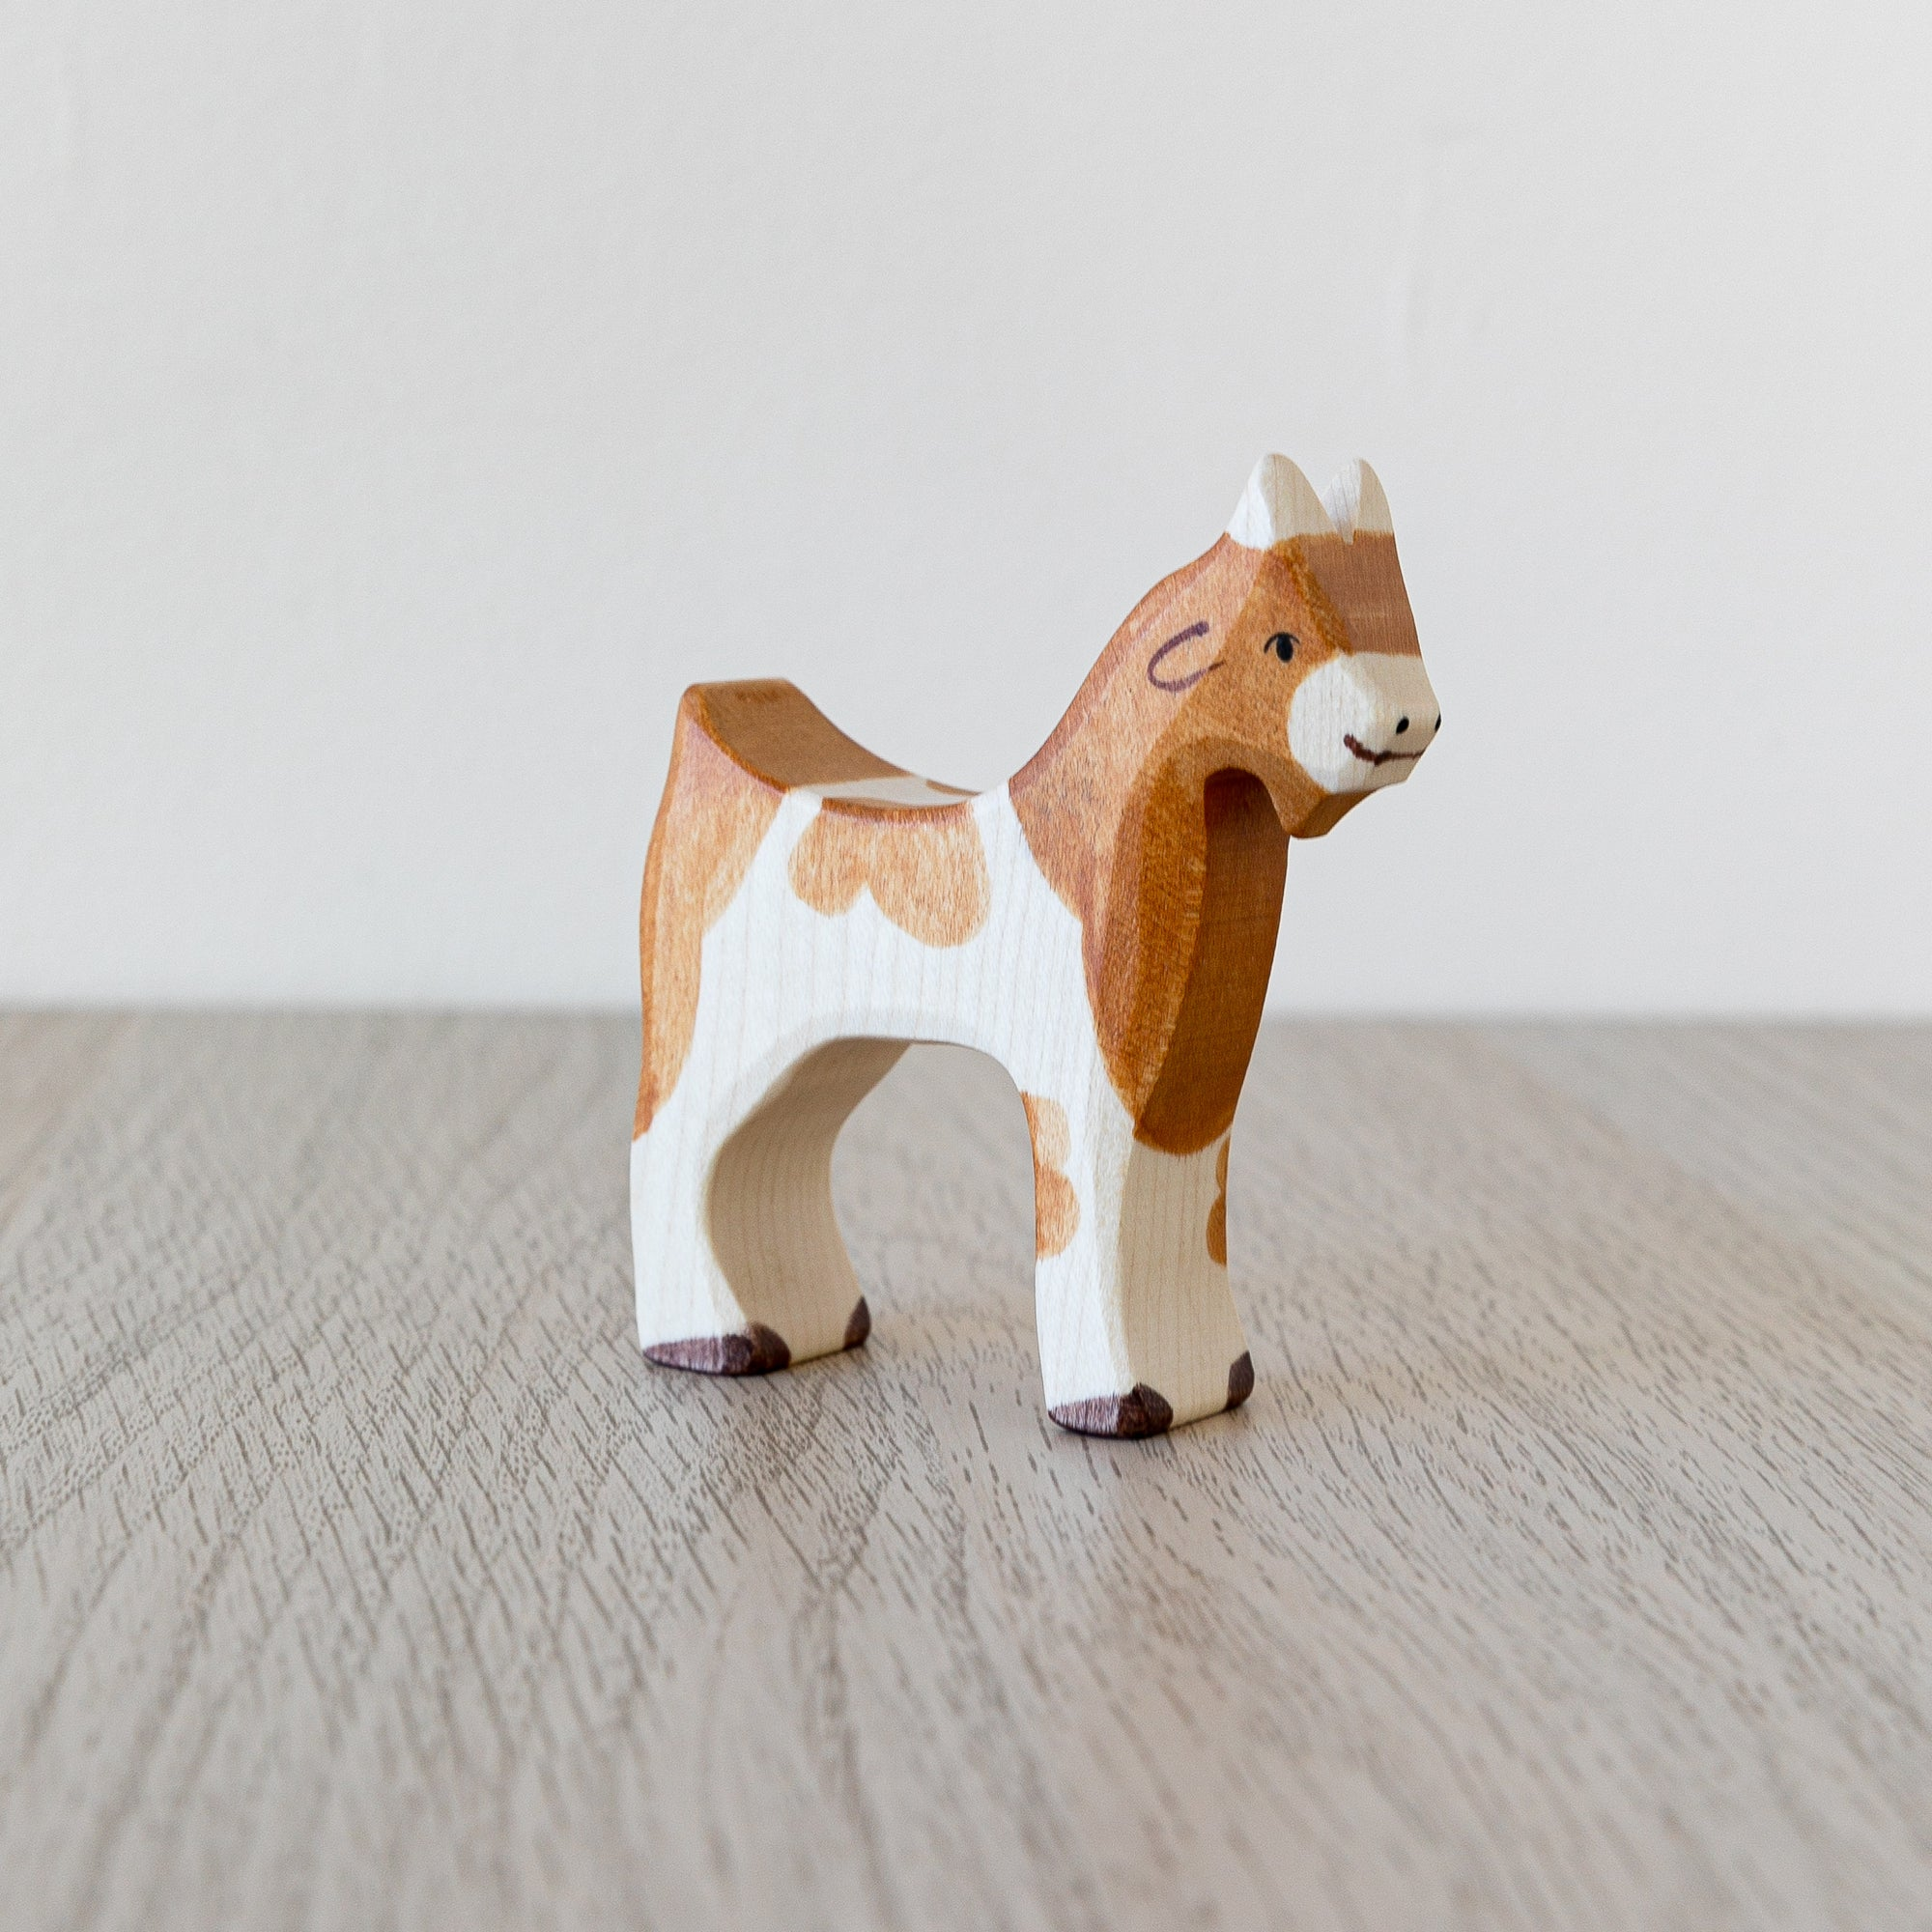 Holztiger Wooden Animal - Goat